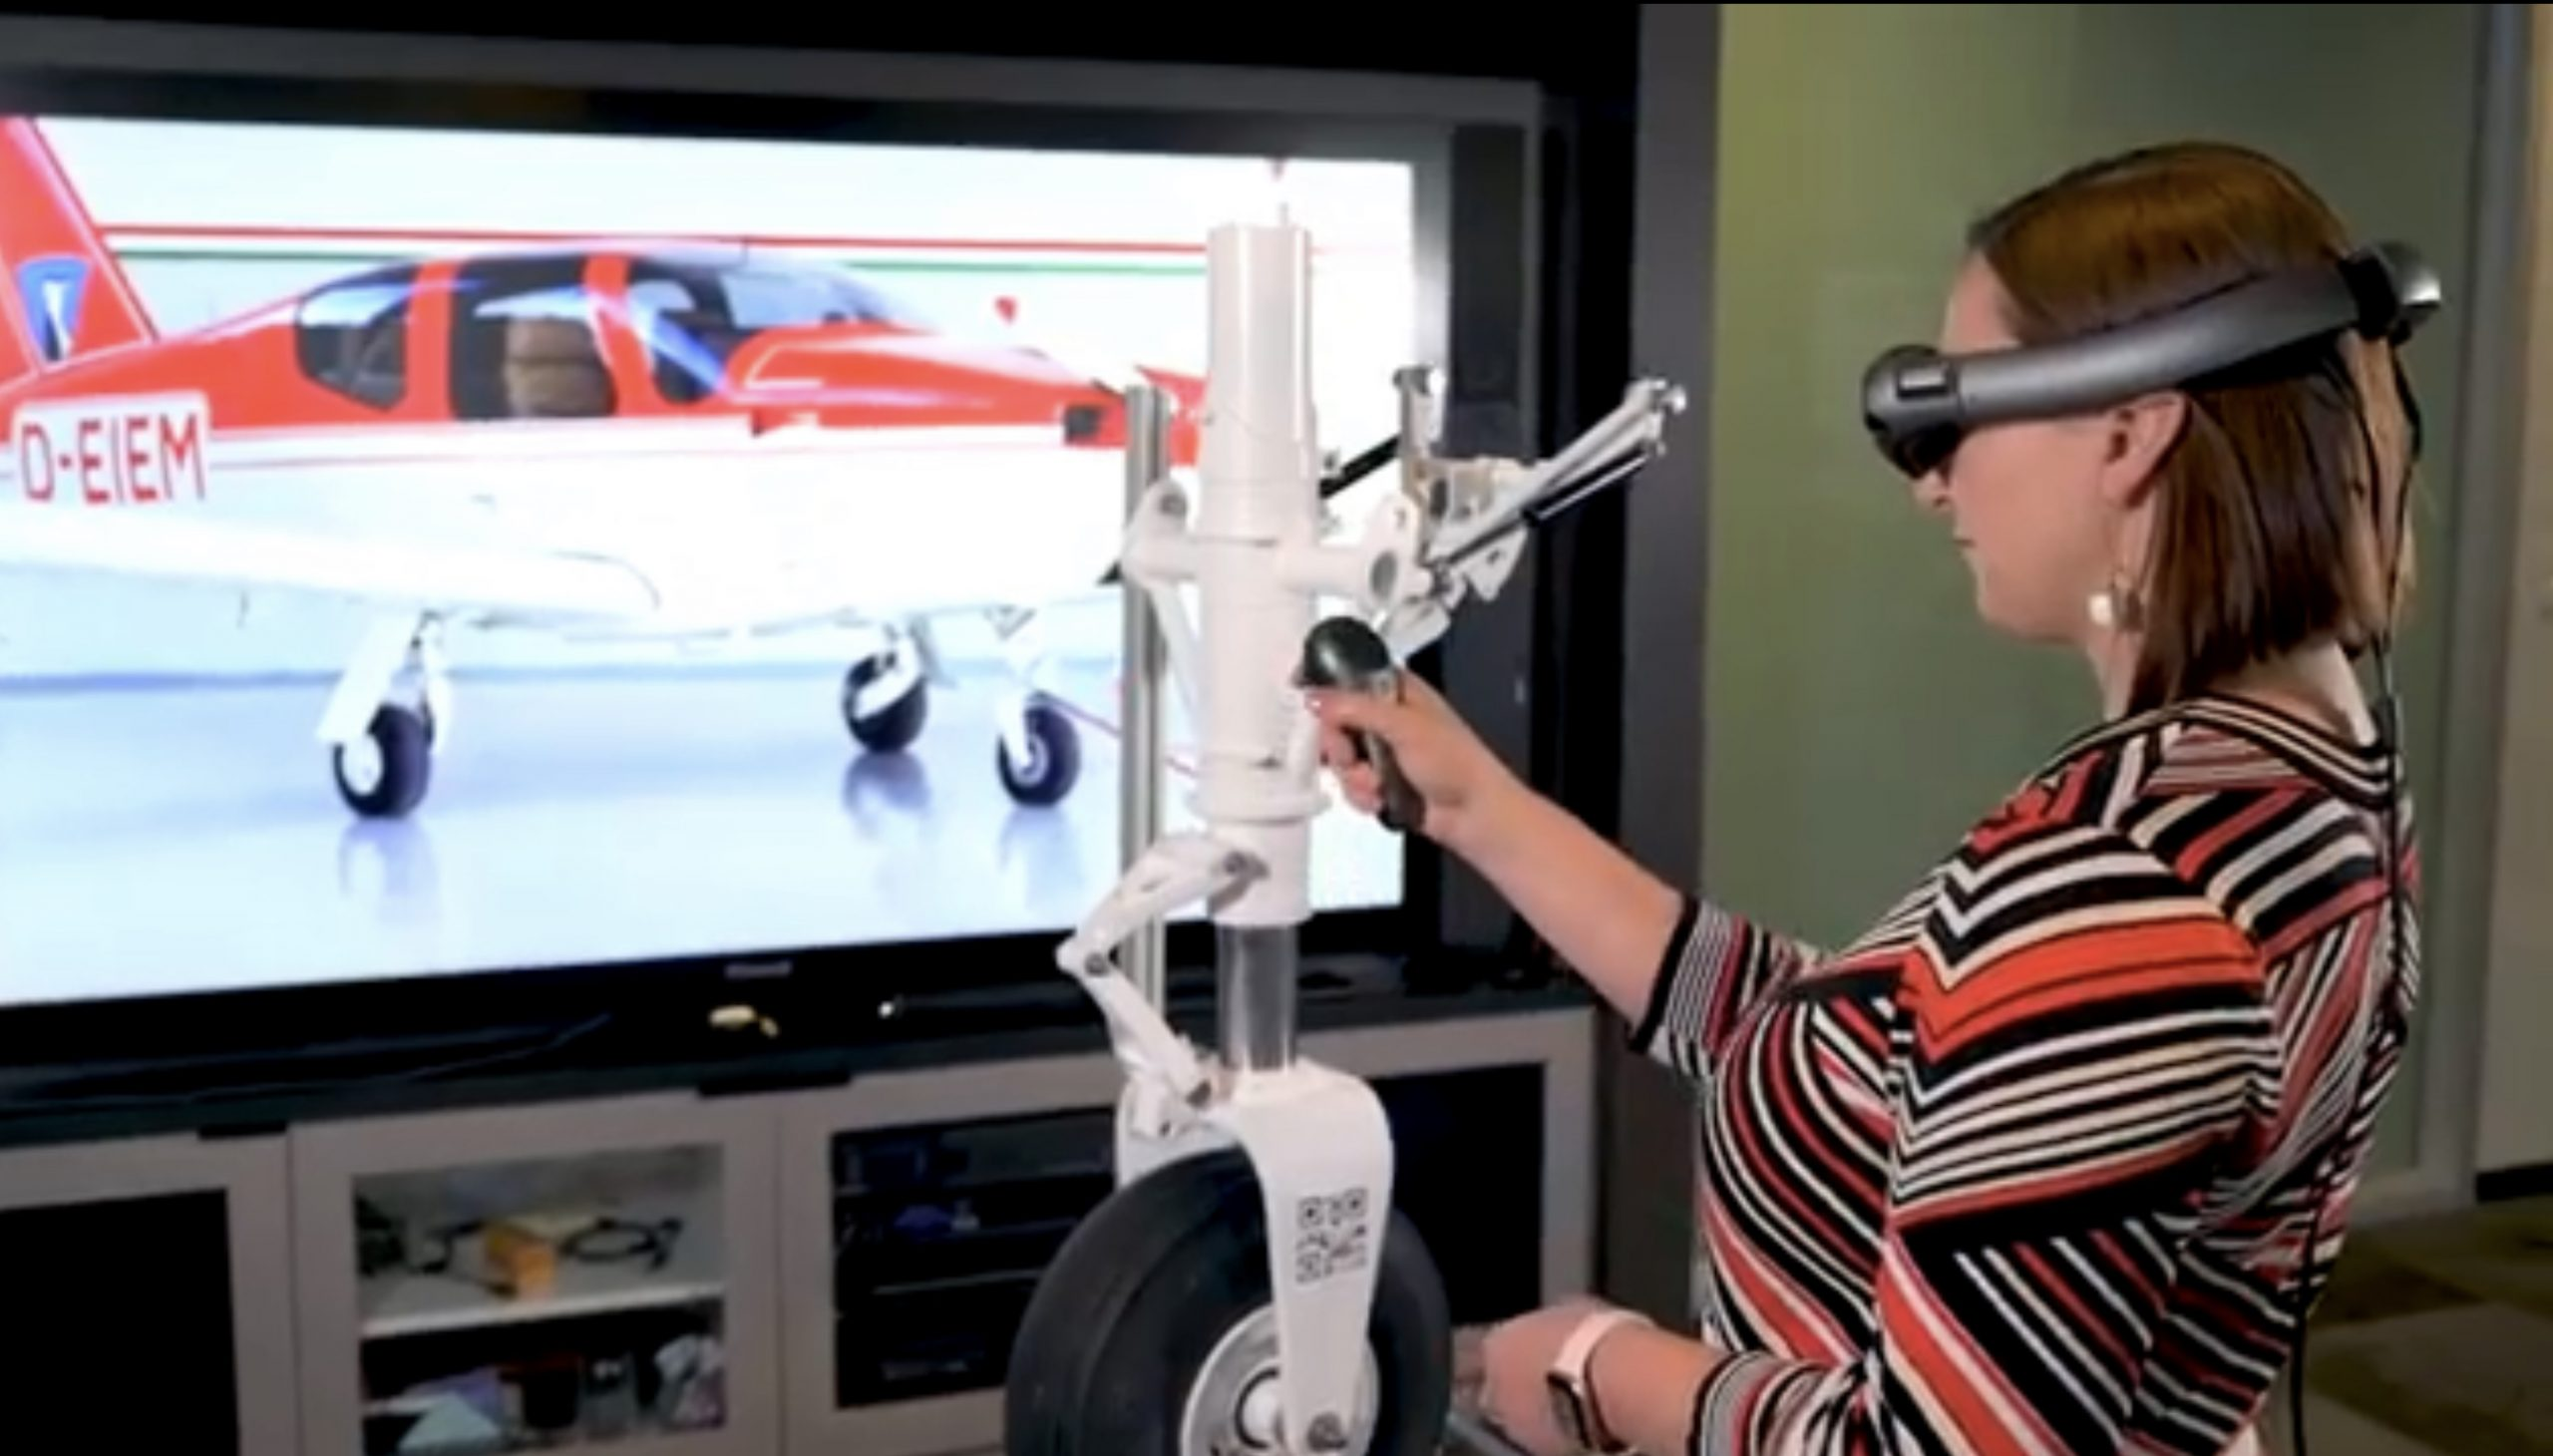 Magic Leap Partners with AMD to Advance Computer Vision  into the Enterprise Market